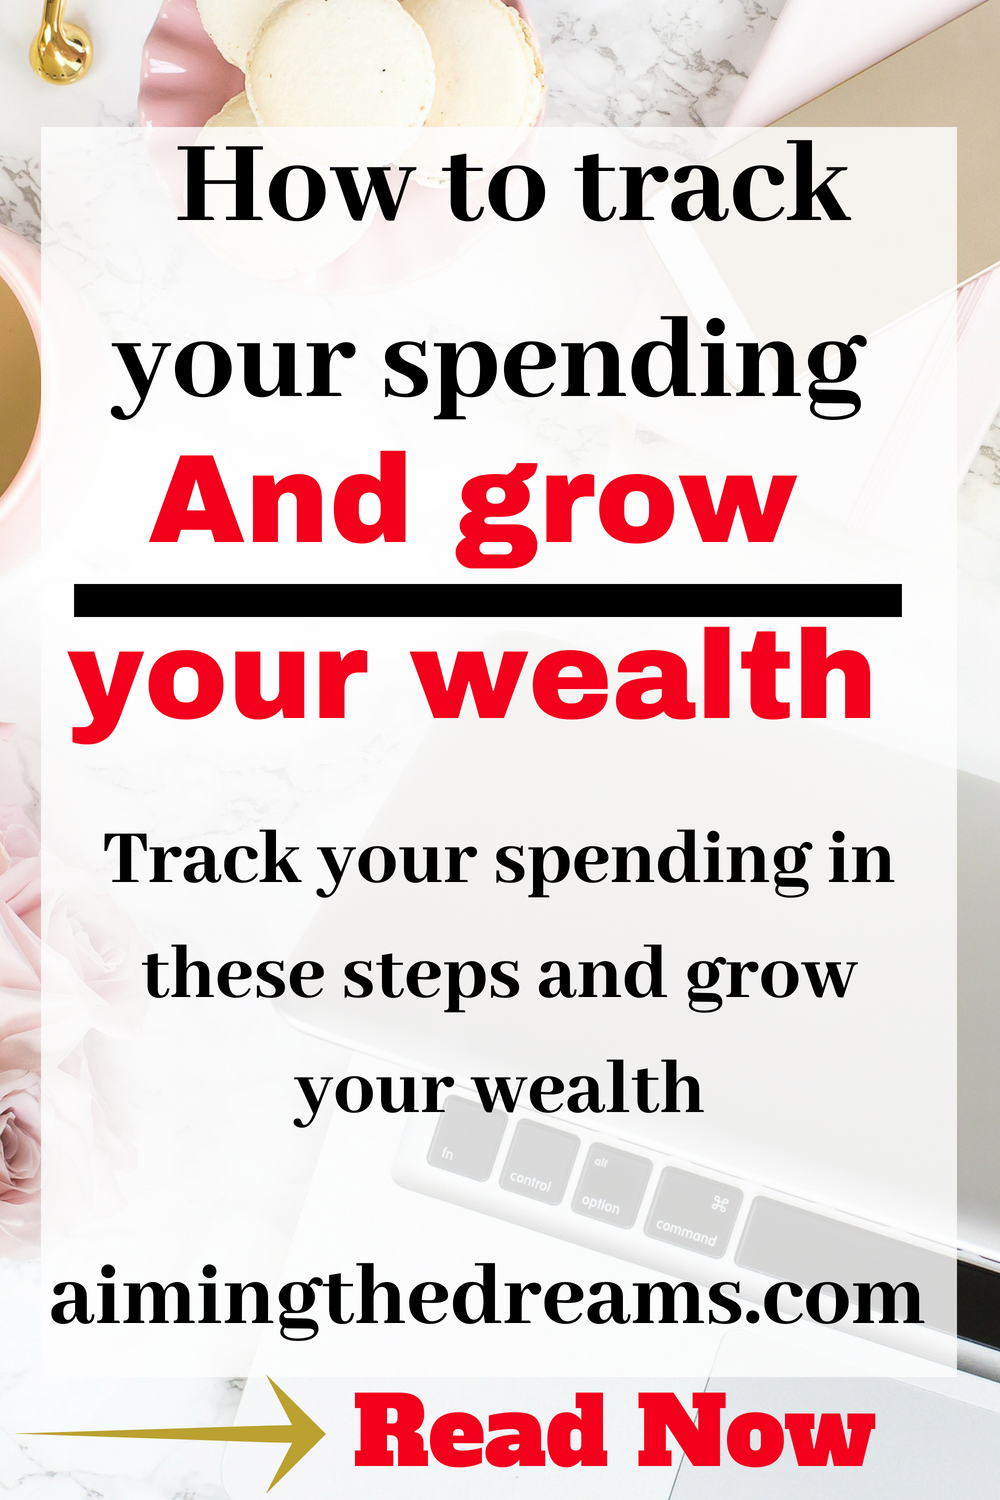 Grow your wealth by tracking your spending. Saving money becomes easy after you know here you are spending your money.